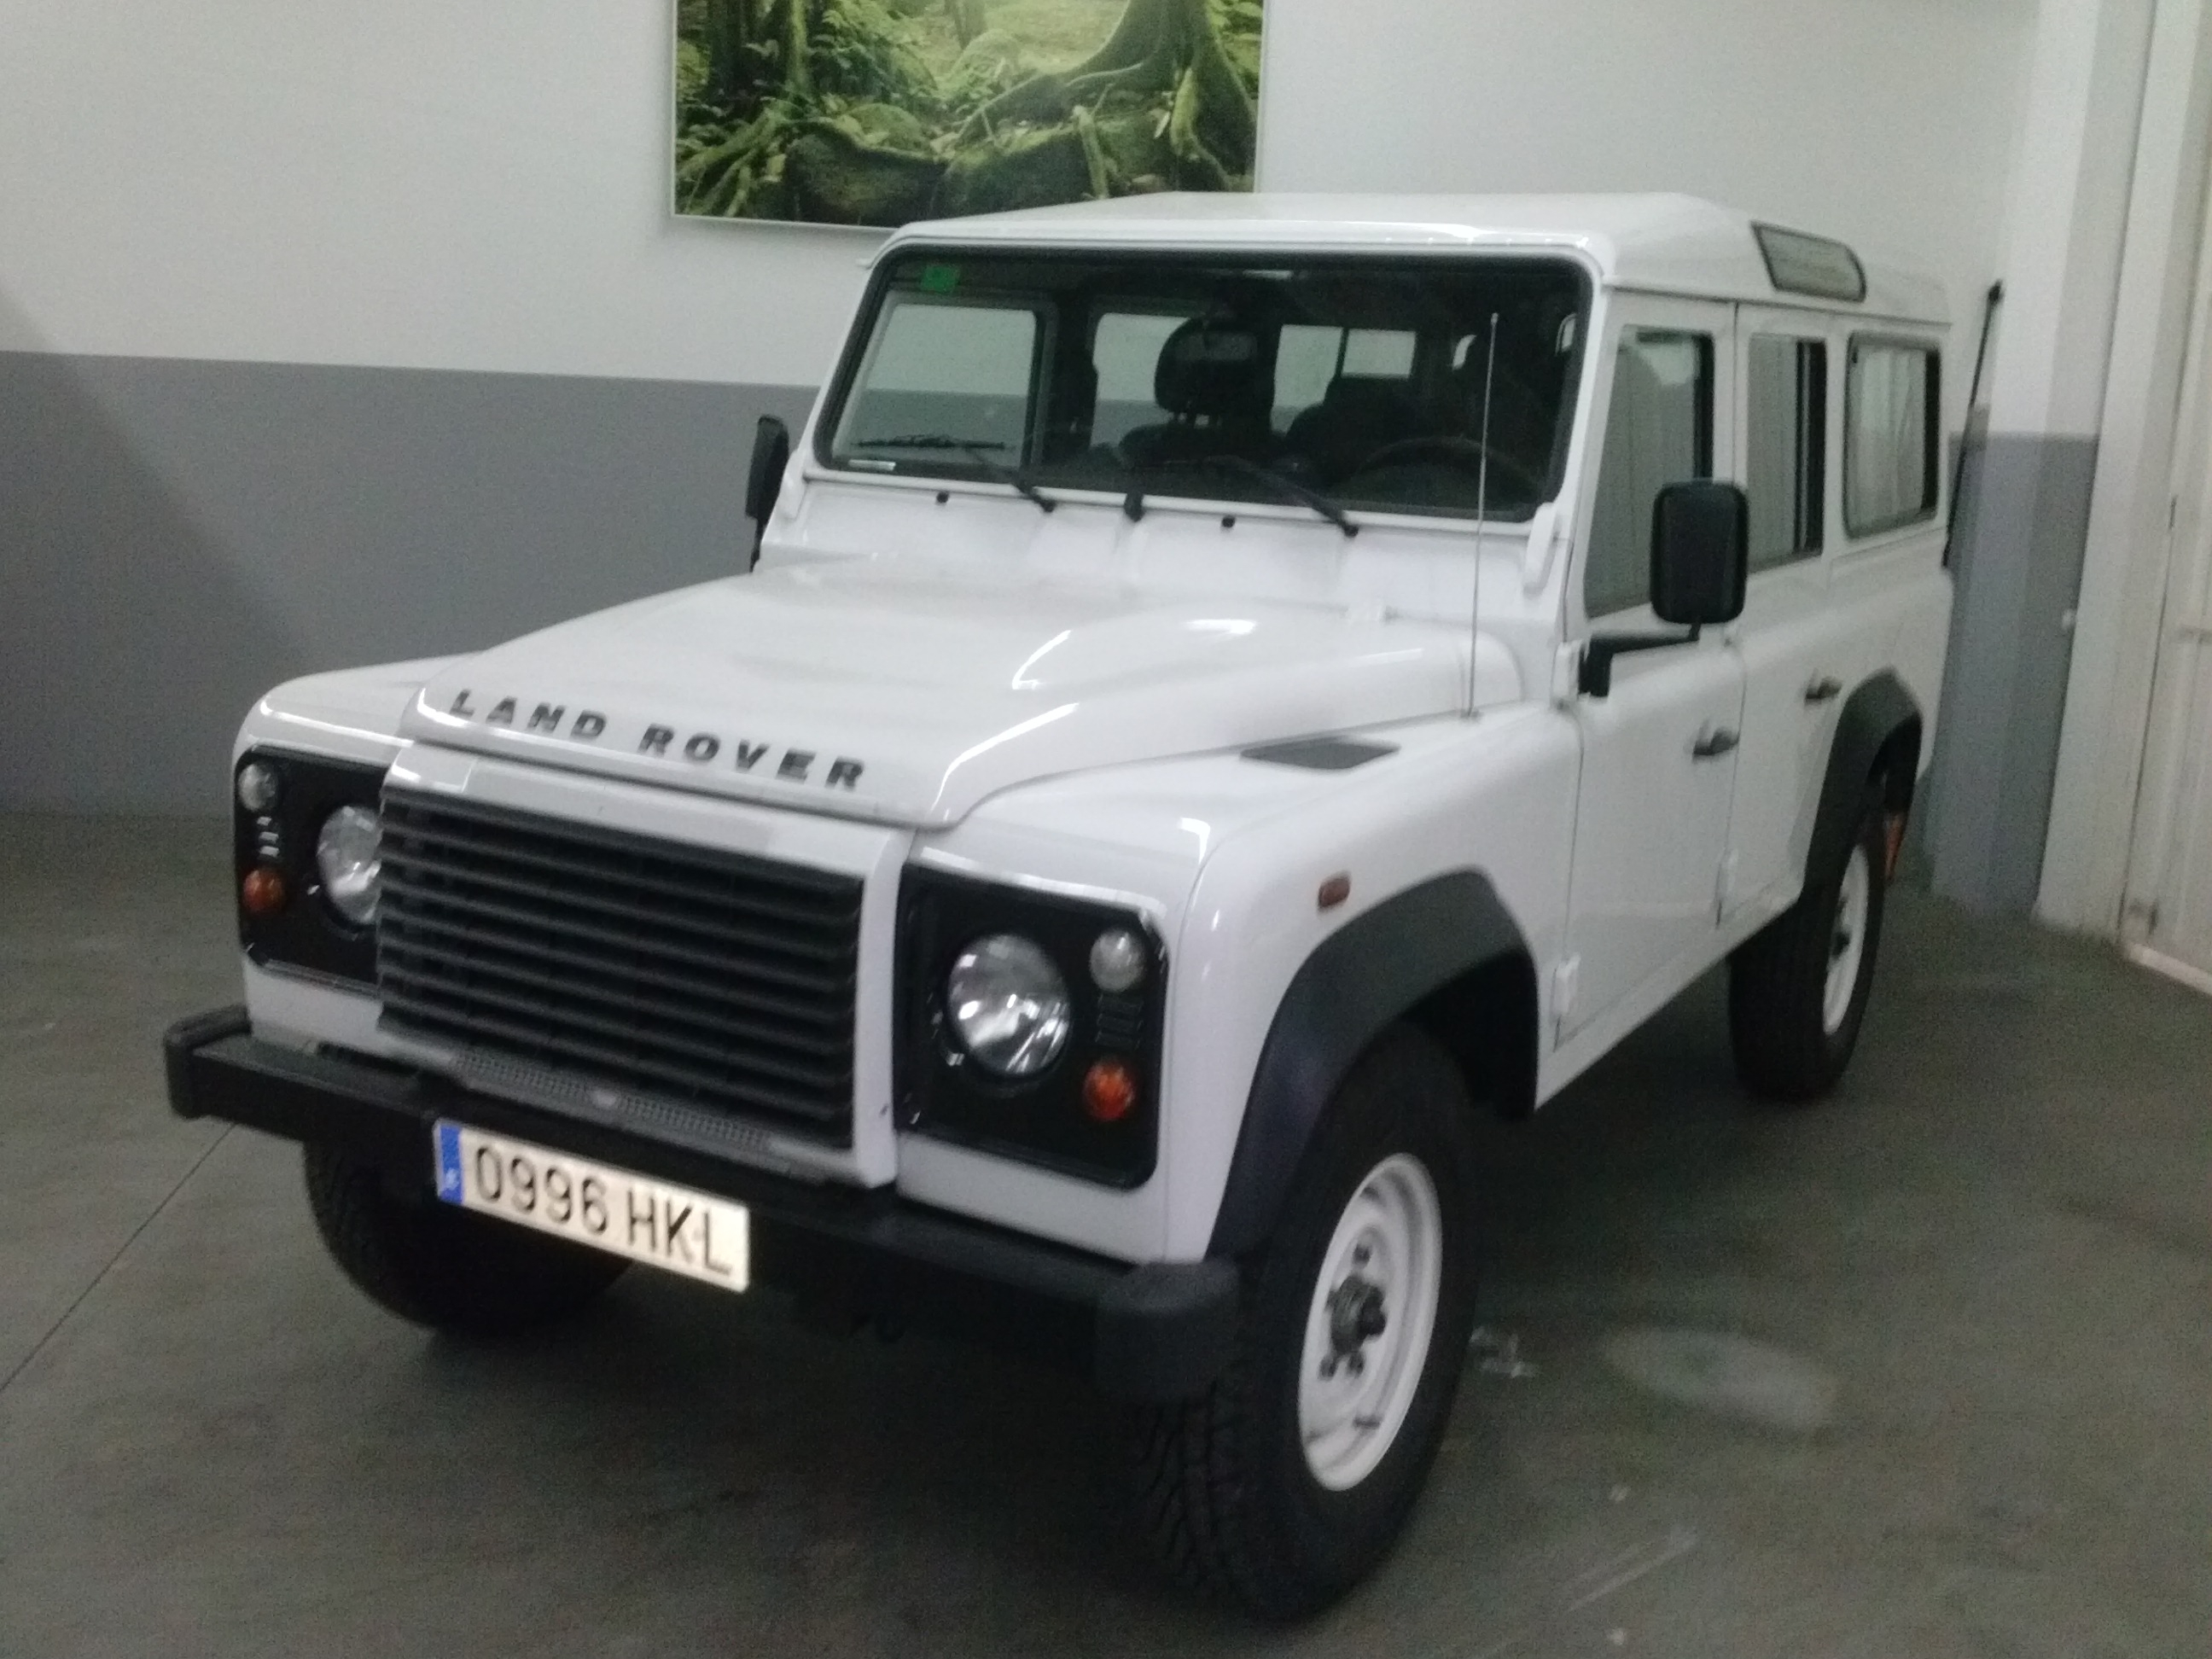 LANDROVER DEFENDER 110 7 SEATS SPANISH REG